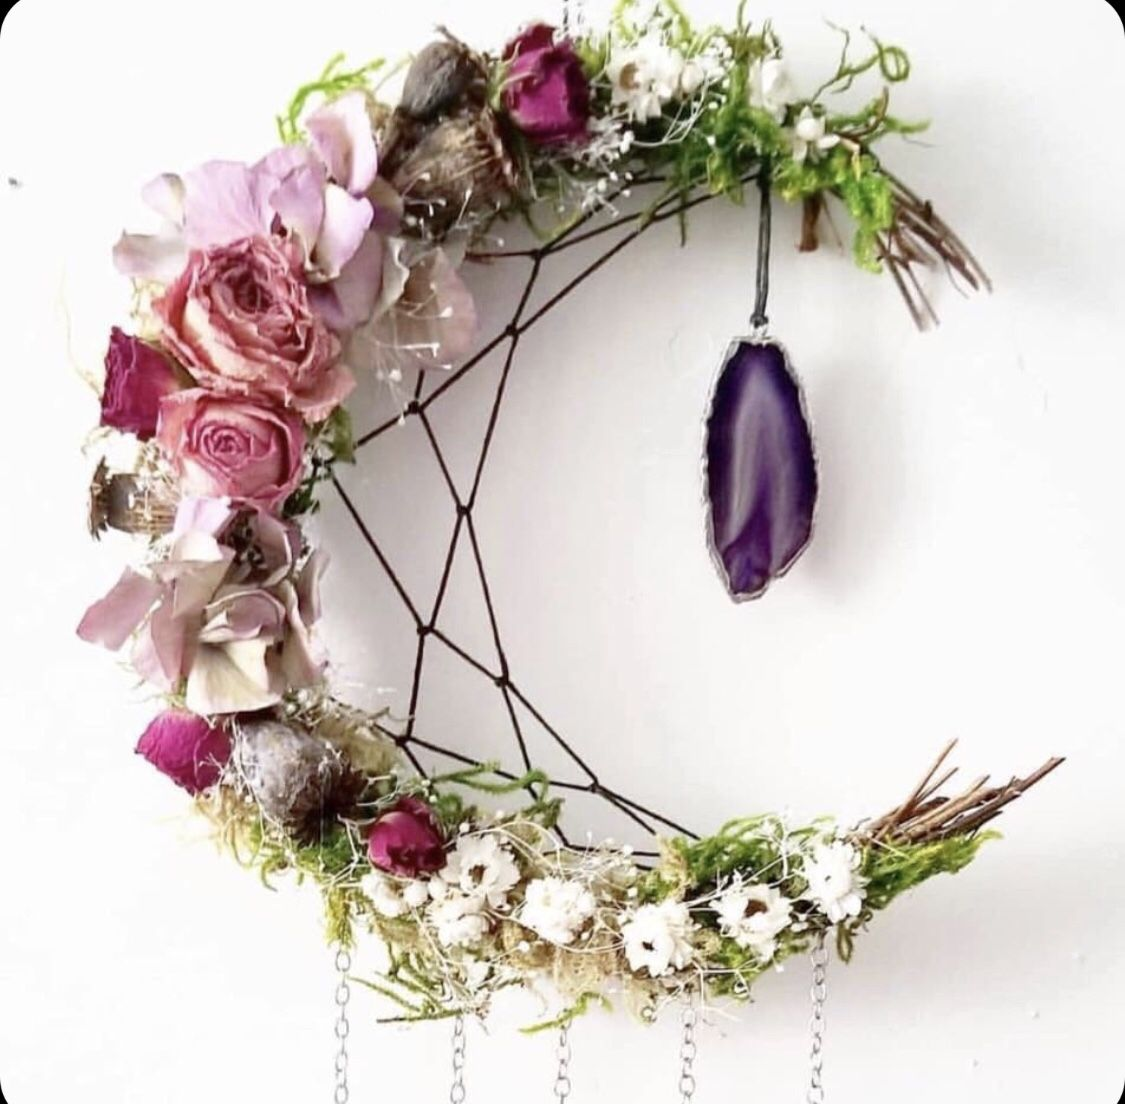 Pin By Mareike Brink On Crystals Pagan Crafts Crafts Witchy Crafts